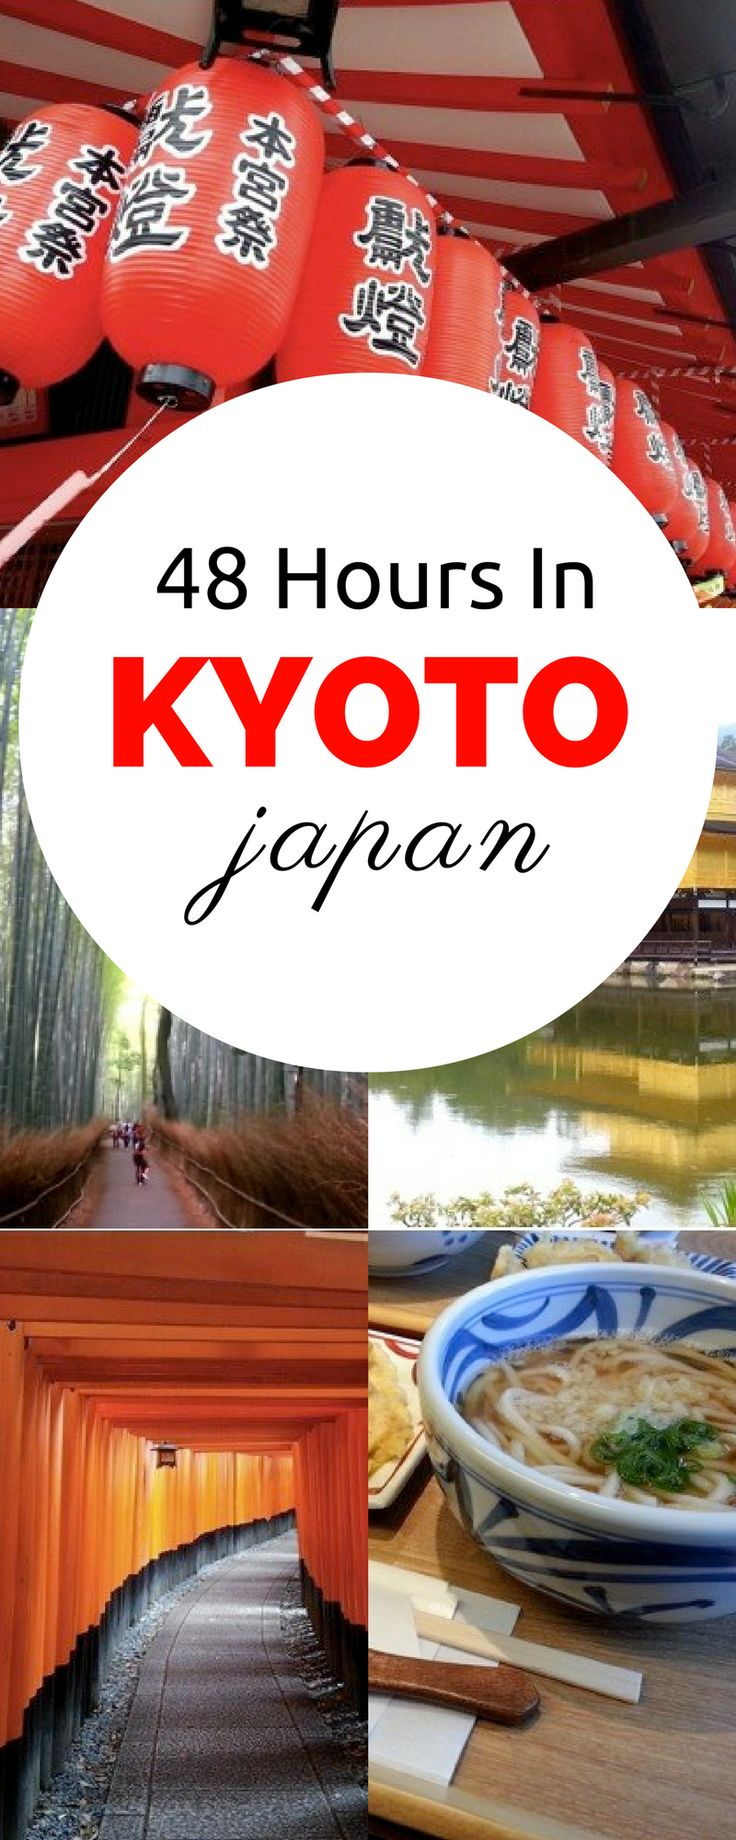 Heading to Japan soon?  Don't miss Kyoto!  With only 2 days in Kyoto, a mere 48 hours in Kyoto, you can see and do so much!  Click through to follow this preplanned itinerary, or use it for ideas!